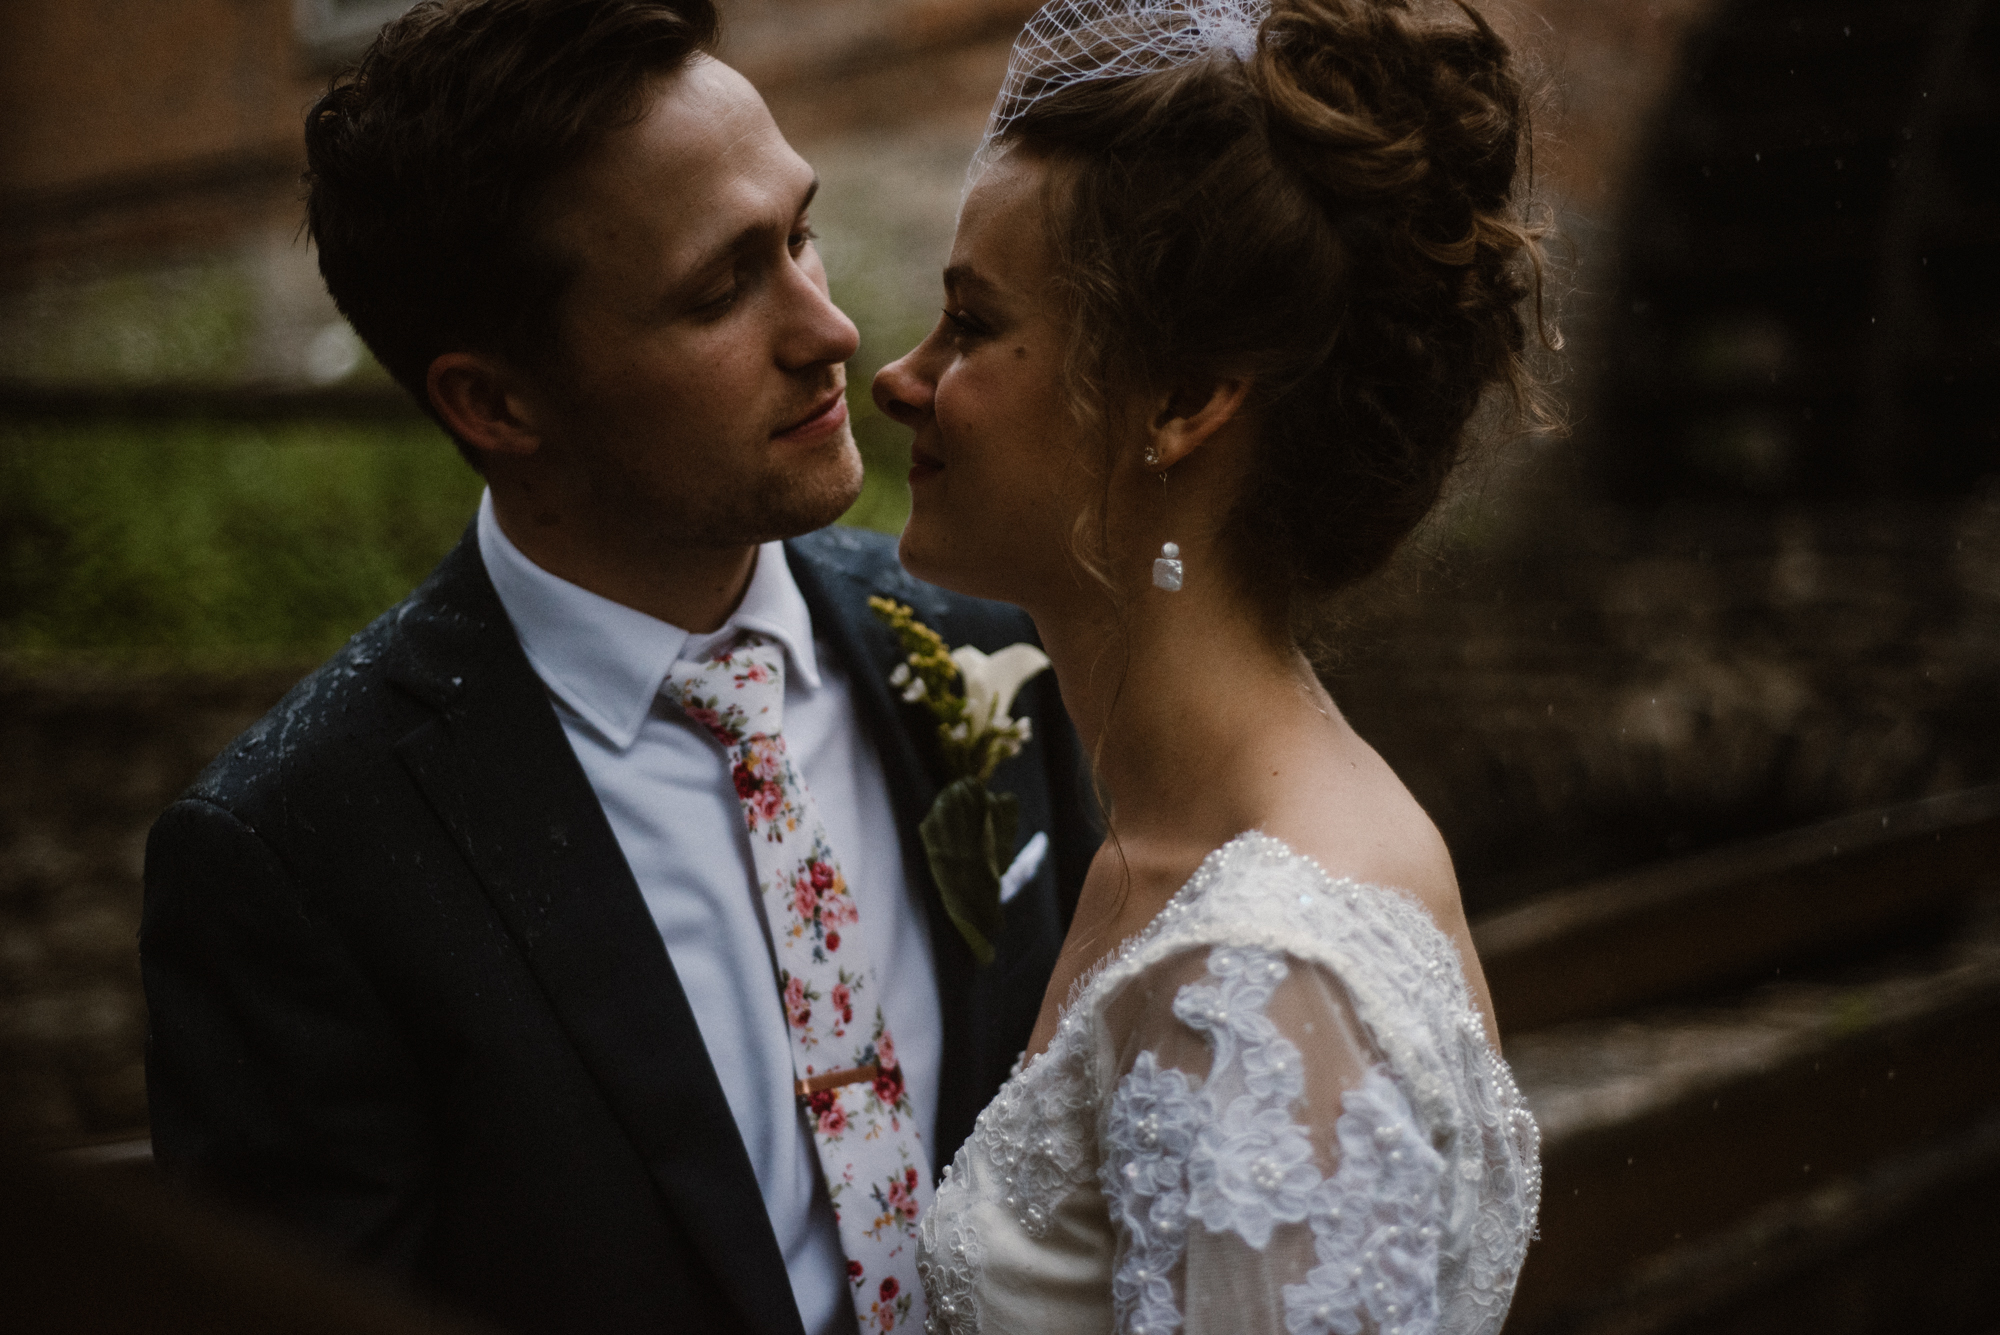 Mairi and Jude - Rainy Backyard Wedding - Intimate Wedding - Fun Reception Photos - Chicago Wedding Photographer - Catholic Wedding - White Sails Creative - Virginia Backyard Wedding Photographer_80.jpg